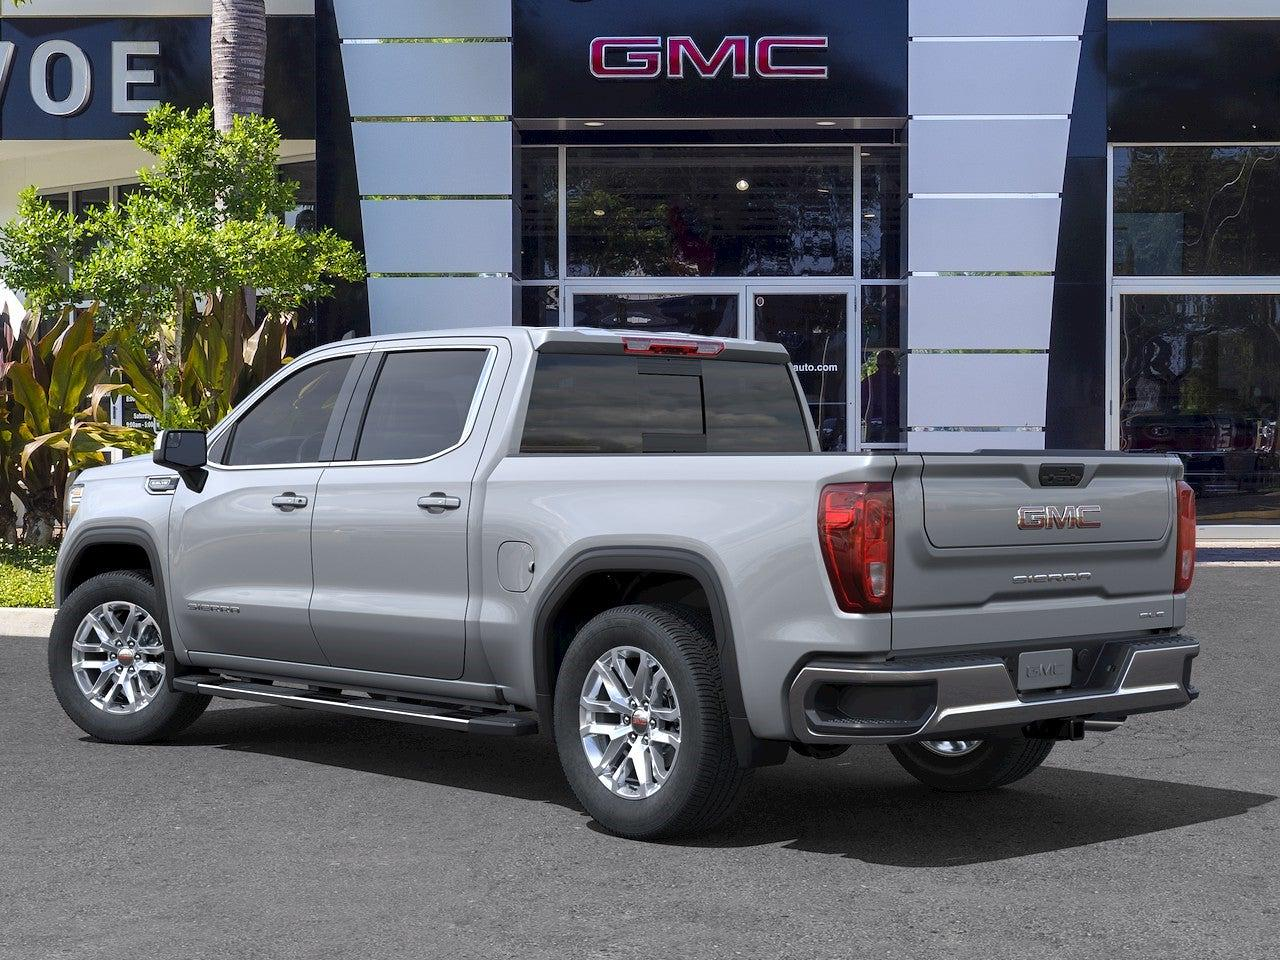 2021 GMC Sierra 1500 Crew Cab 4x2, Pickup #T21272 - photo 6